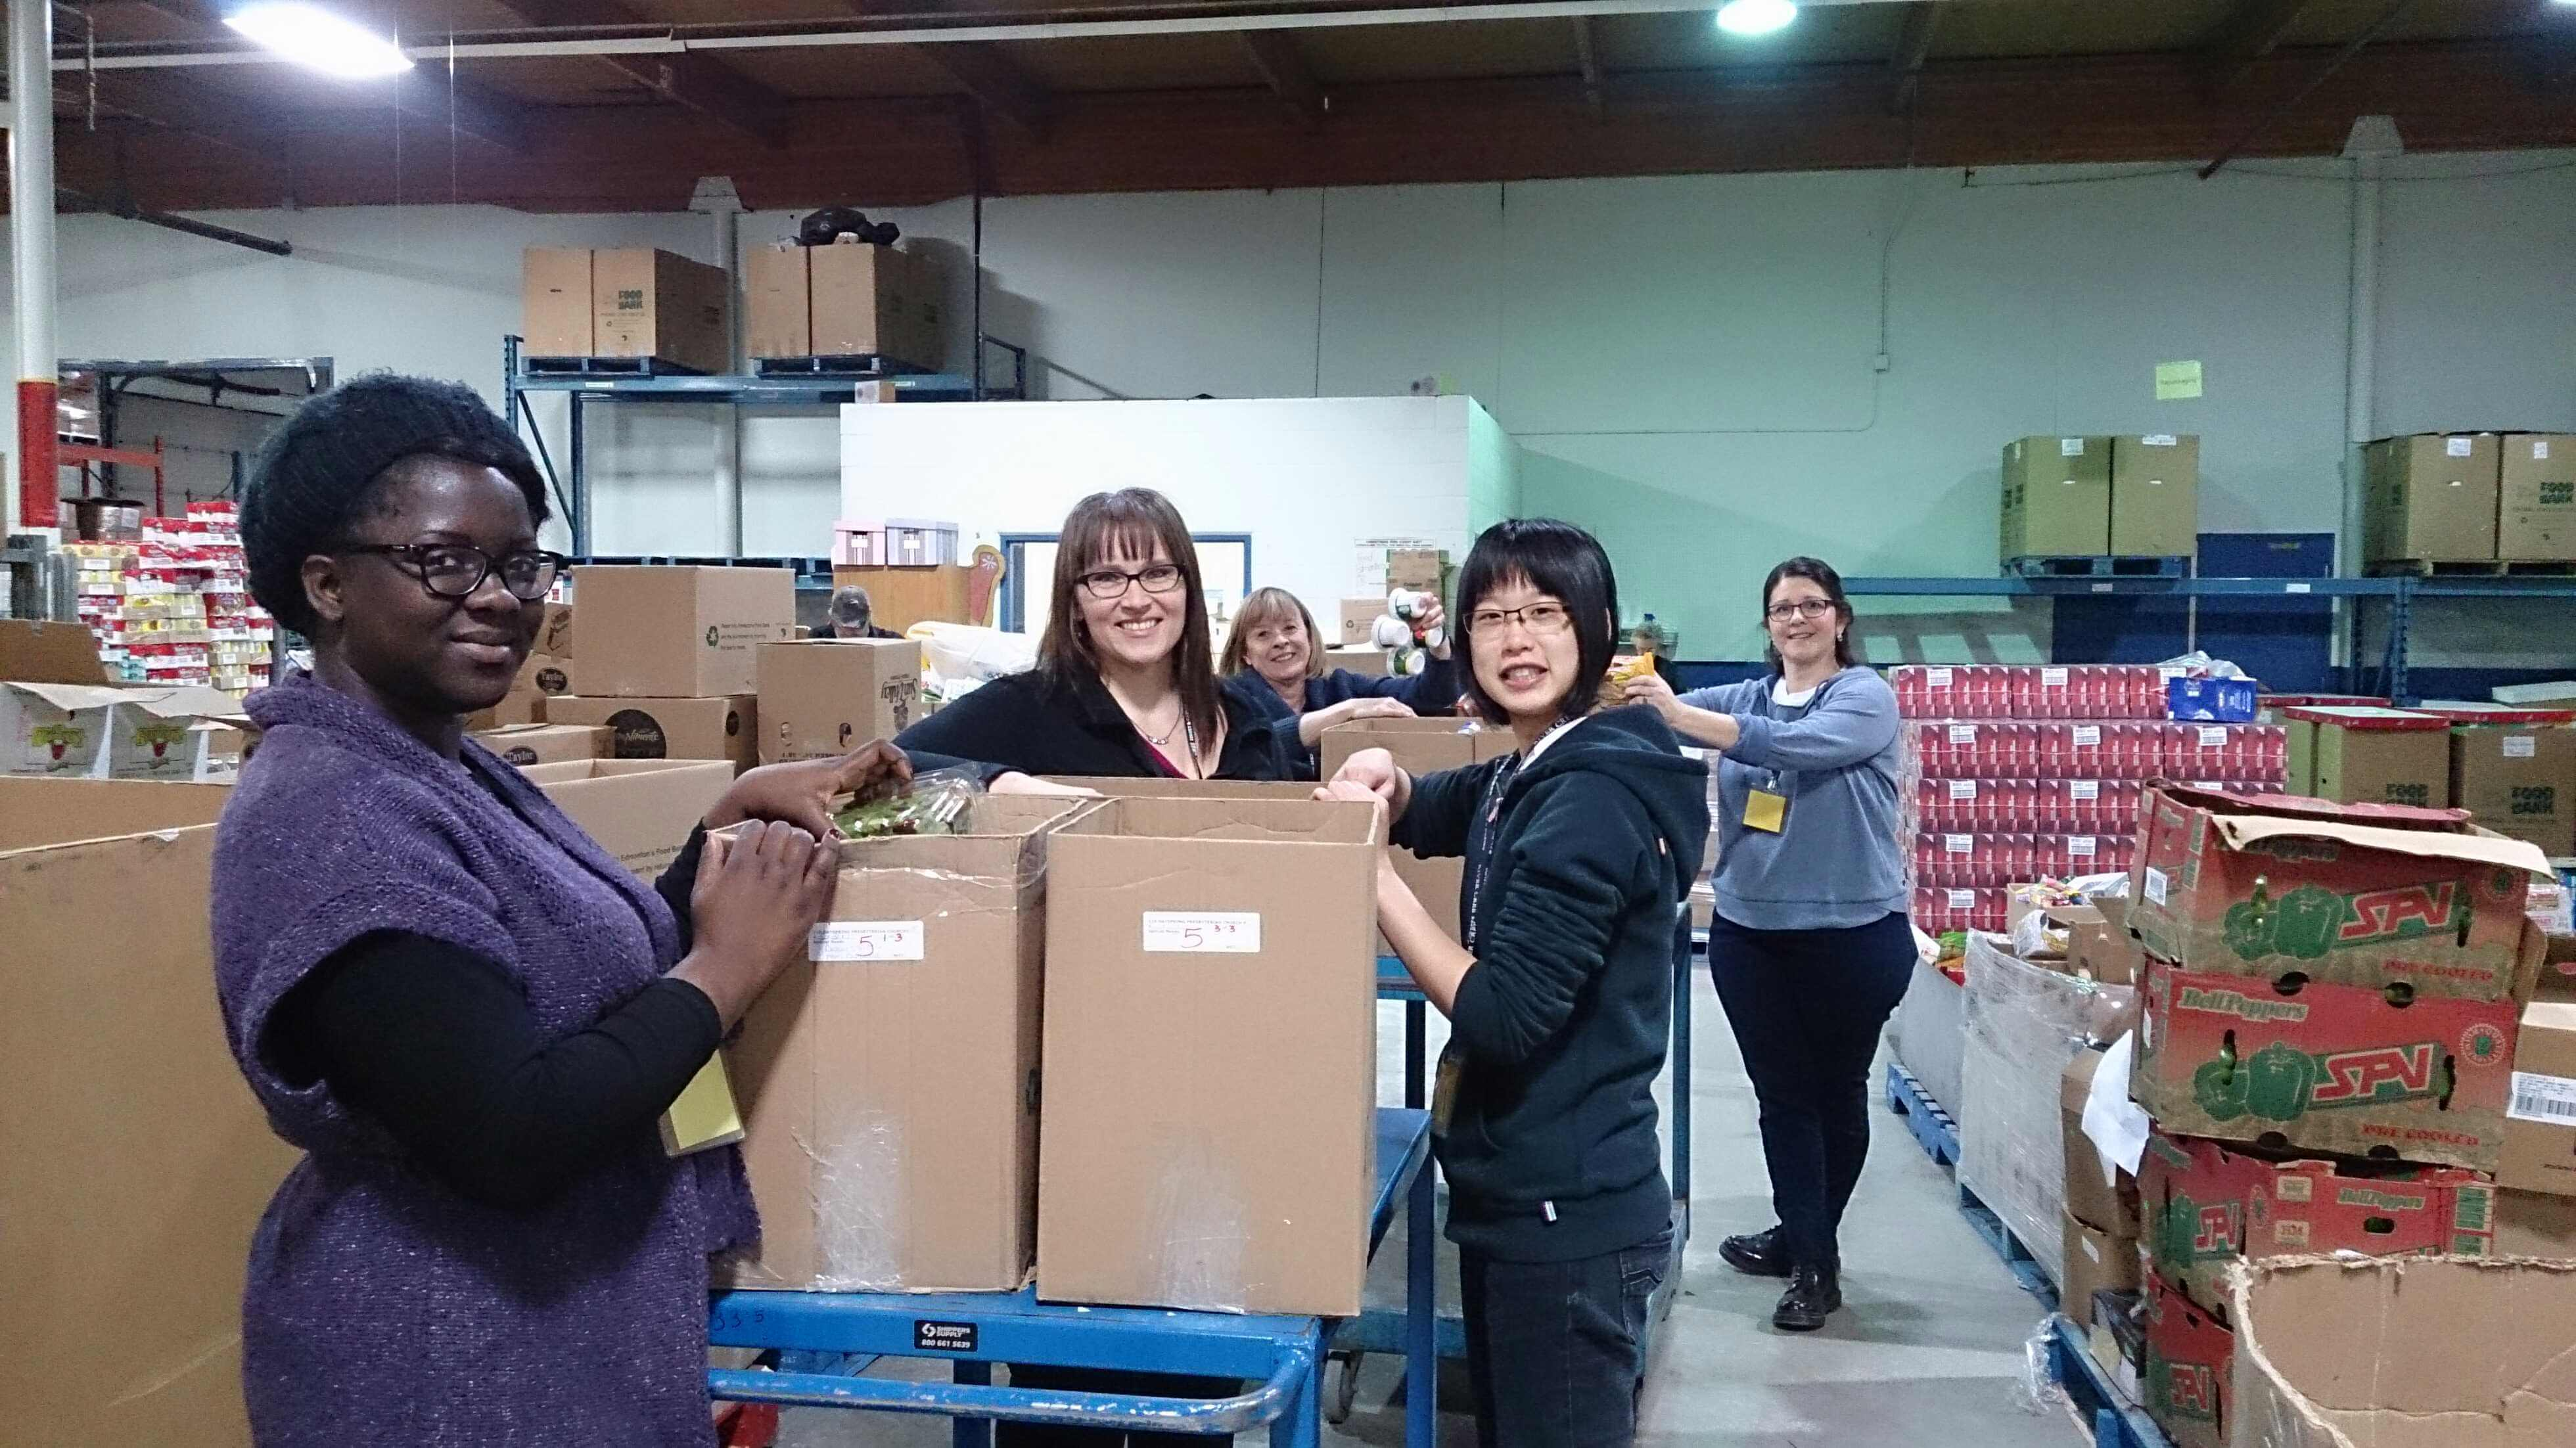 Edmonton Food Bank Volunteering January 2015